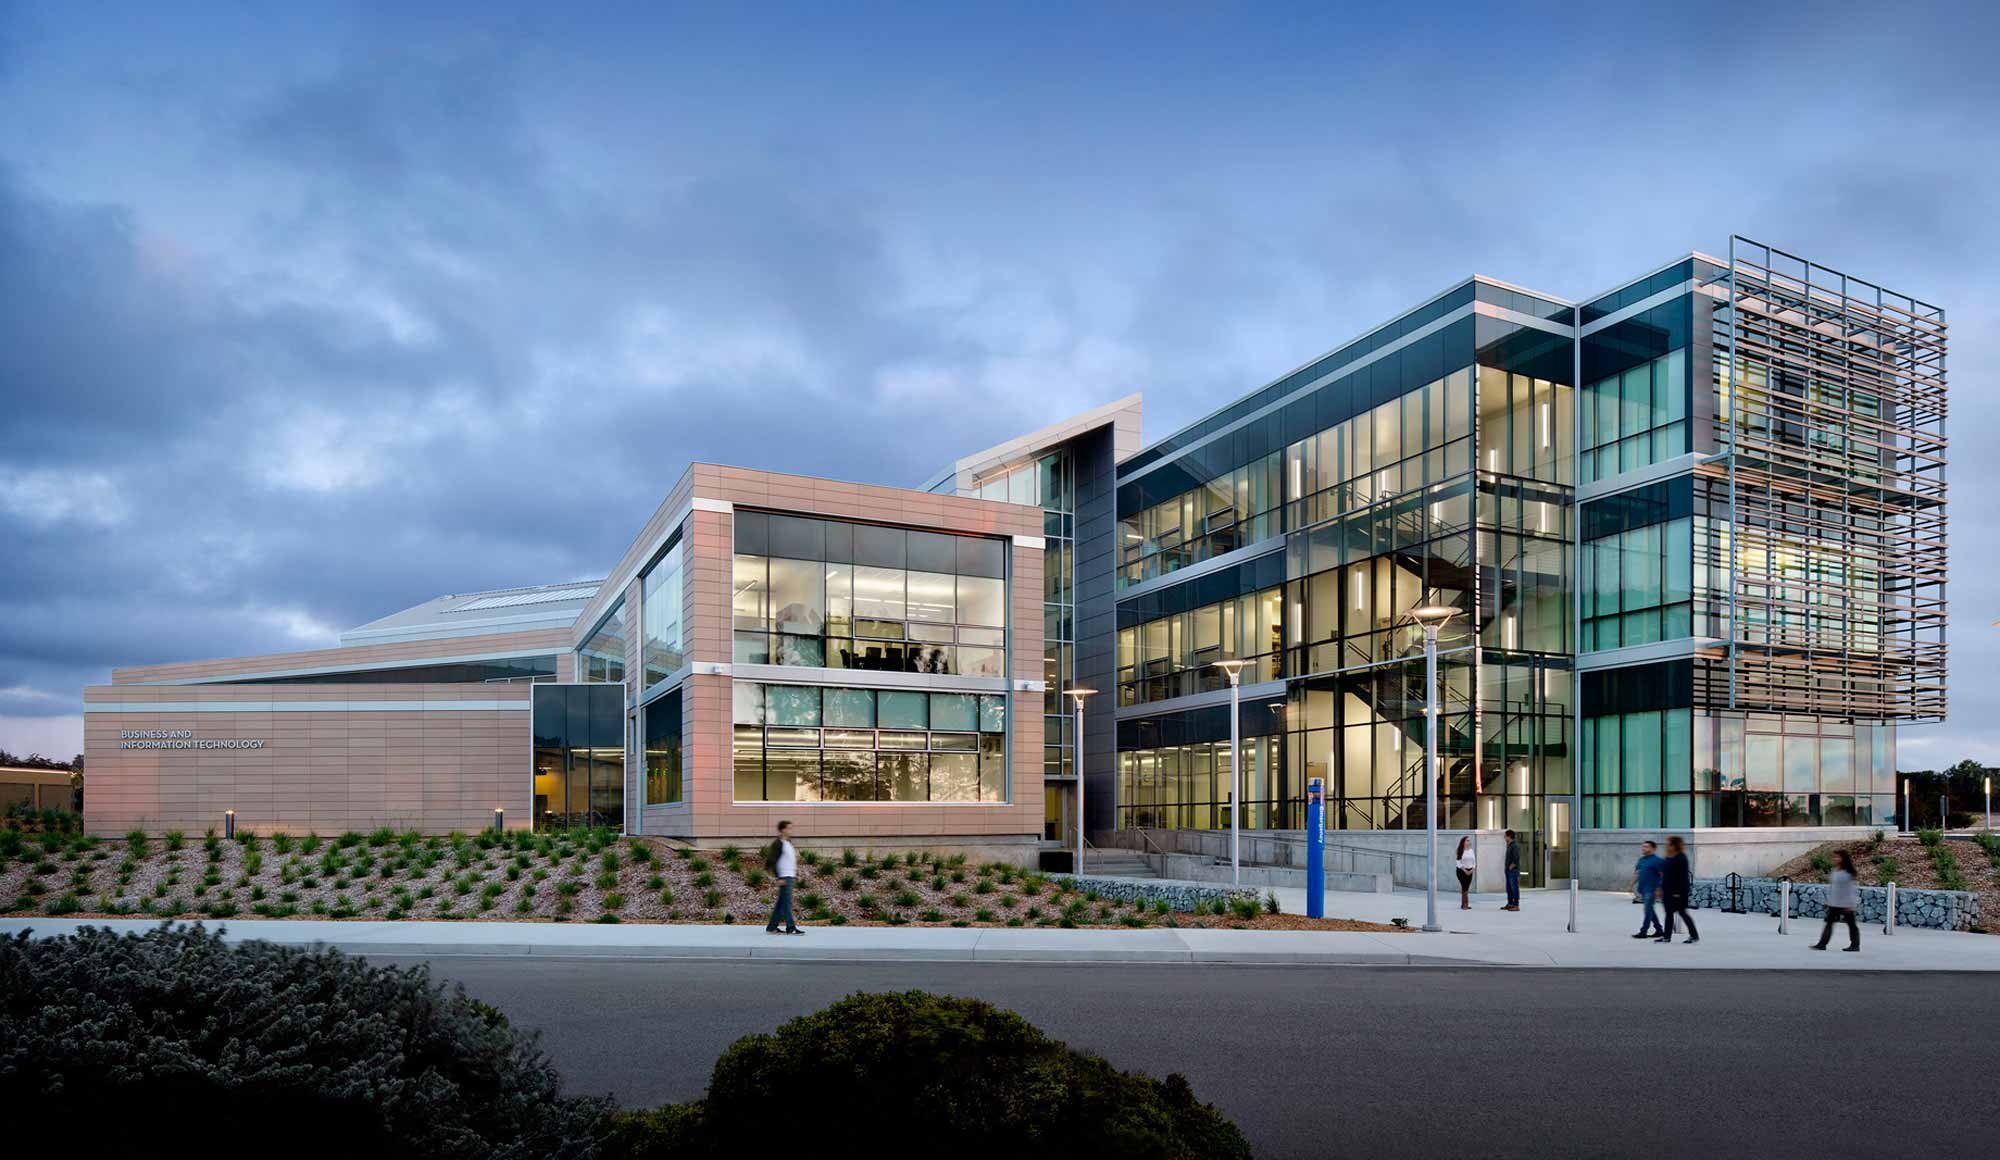 Monterey Bay University >> Csu Monterey Bay The Business Information Technology Building